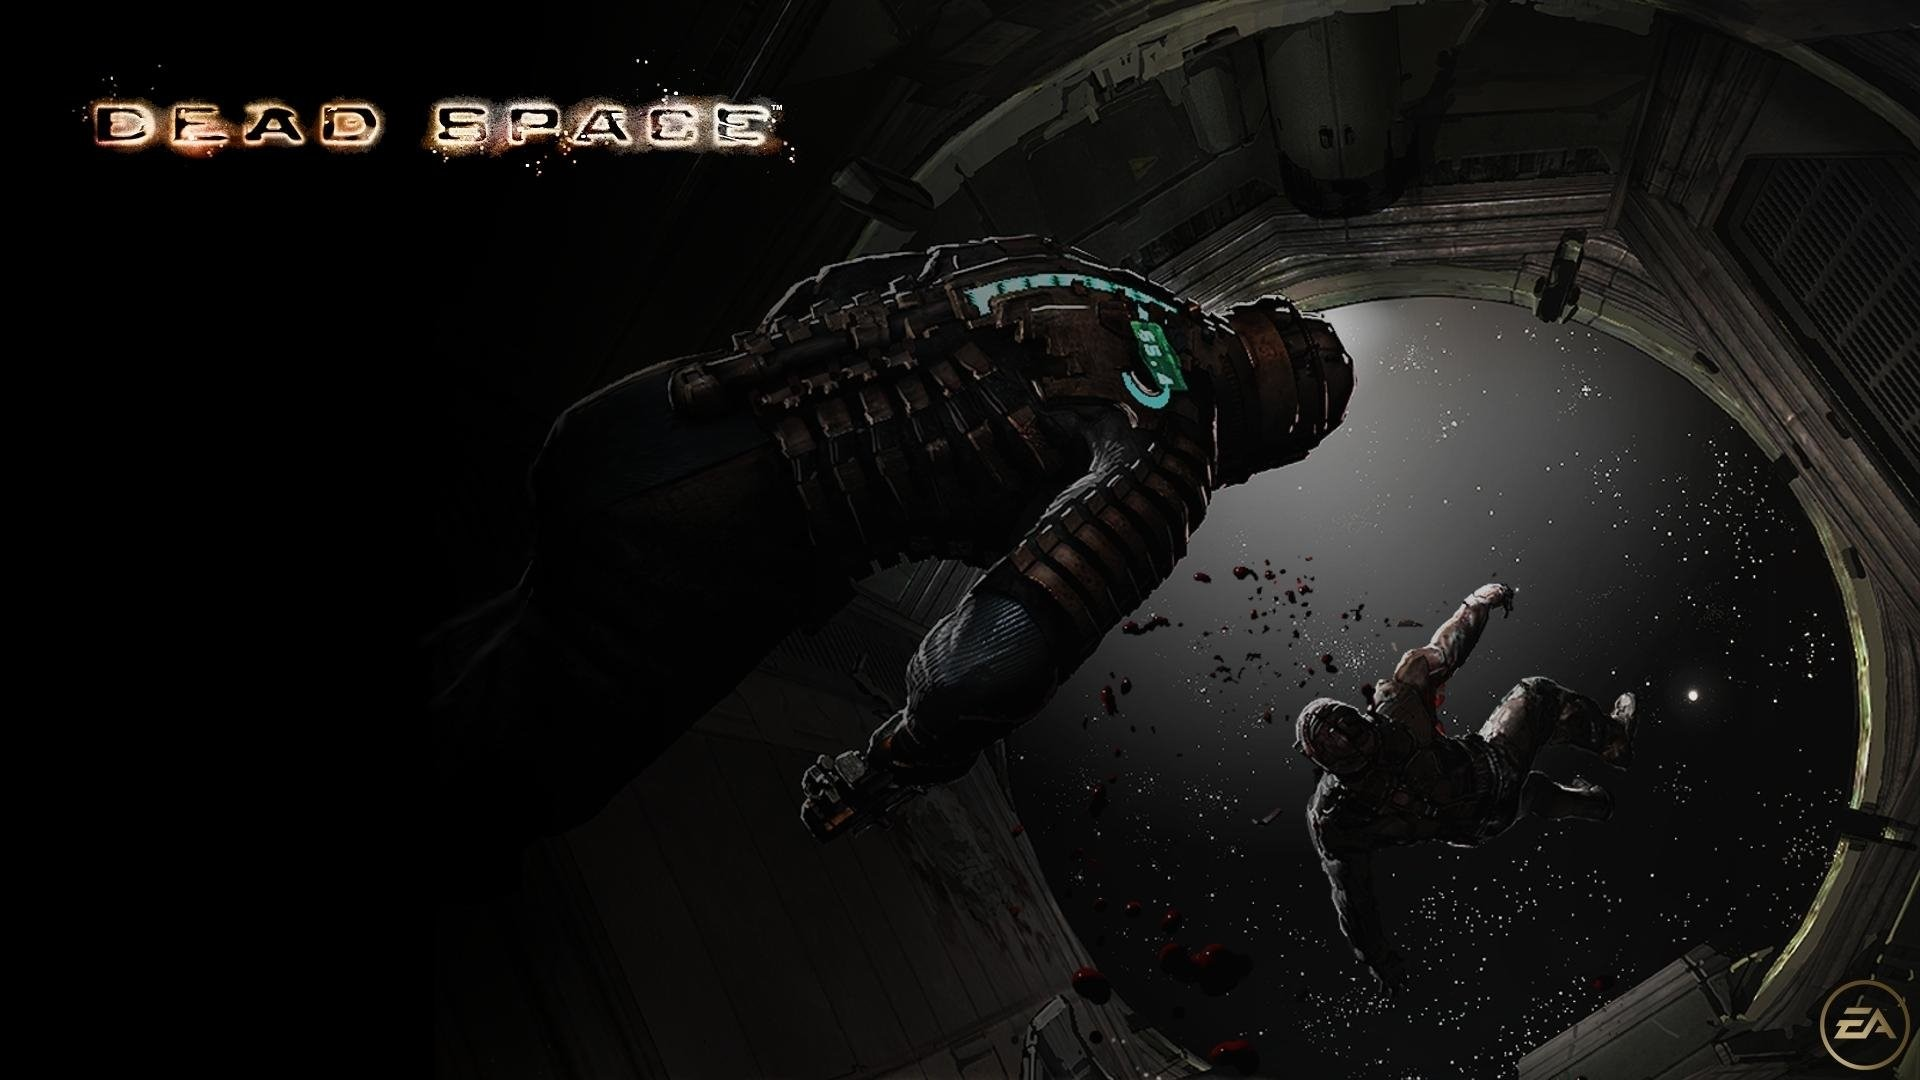 Res: 1920x1080, HD Wallpaper | Background Image ID:75208.  Video Game Dead Space